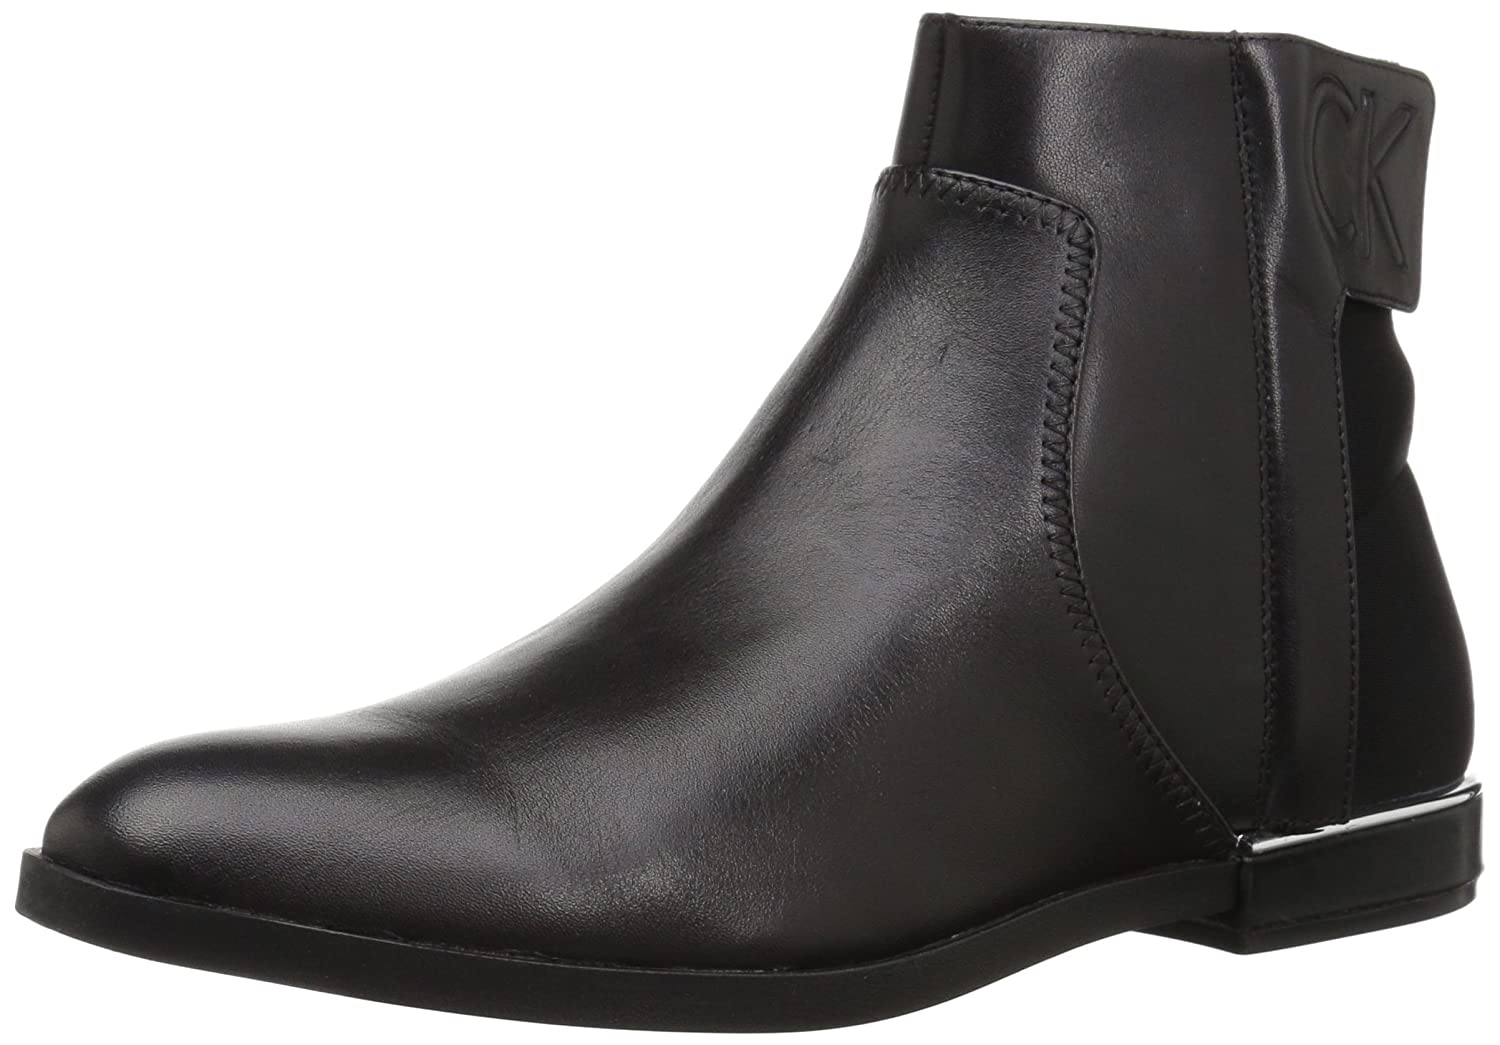 Calvin Klein Women's Prisca Ankle Boot B073GY6H55 6 M US|Black